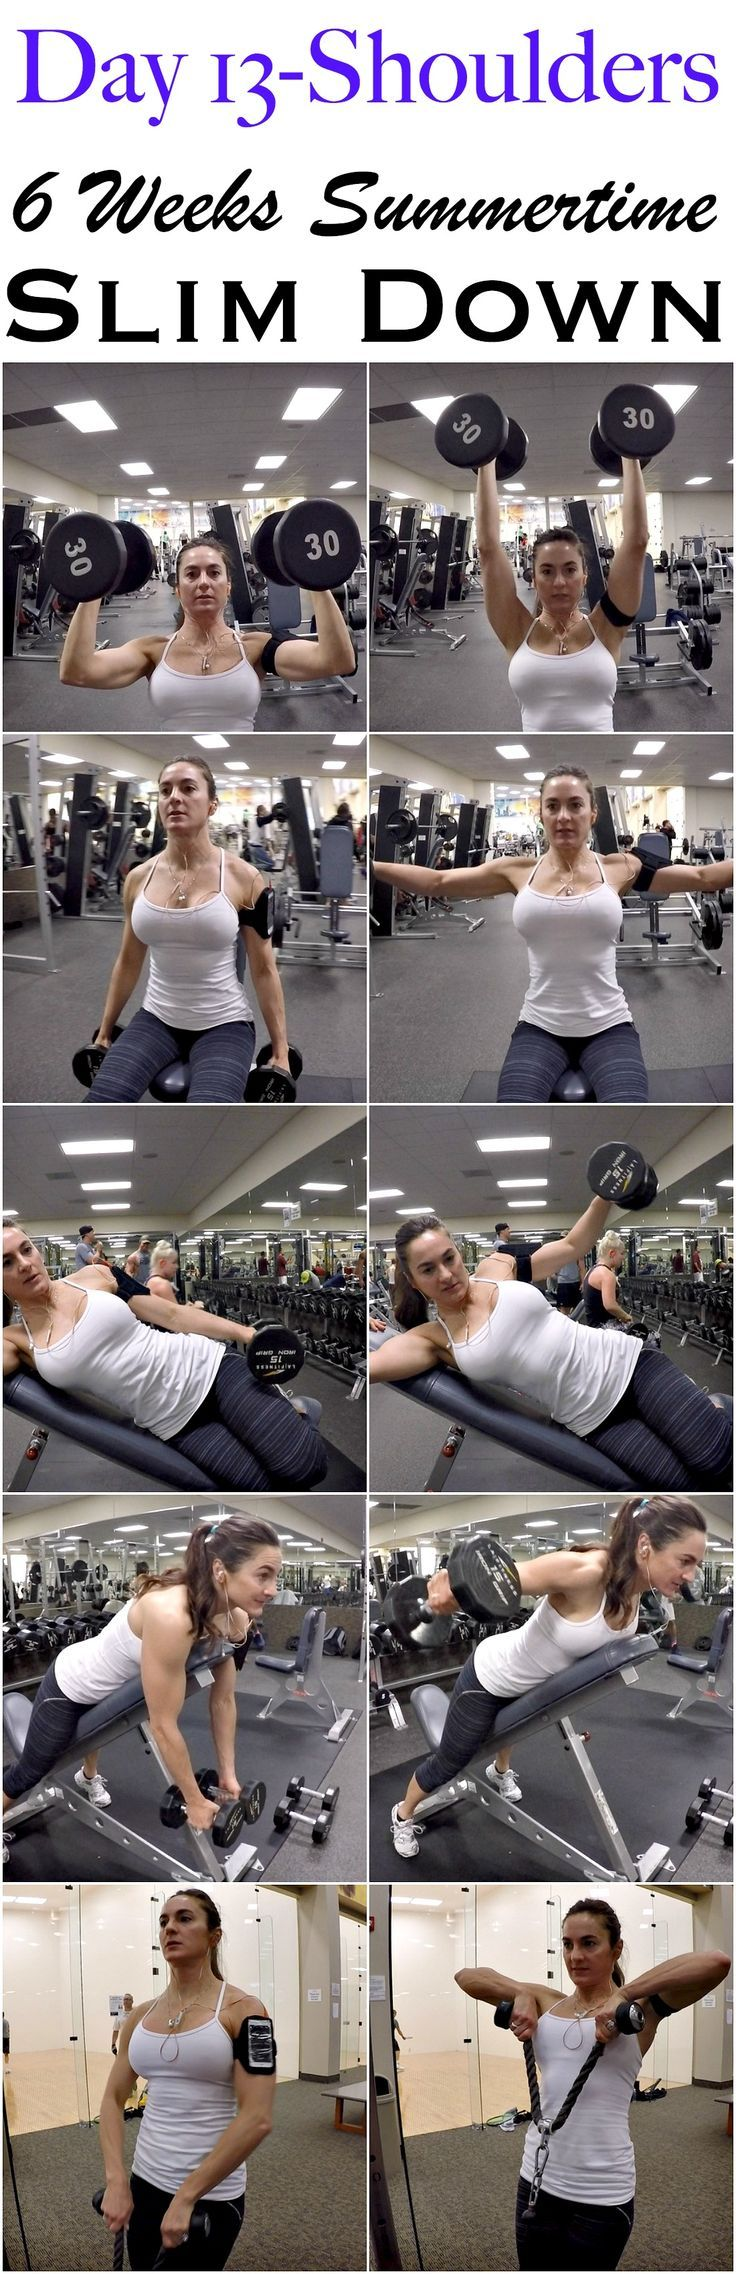 See more here ► https://www.youtube.com/watch?v=PXd1ZvFT_uU Tags: how to lose body fat not weight - 6 WEEKS SUMMERTIME SLIM DOWN: DAY 13-SHOULDERS